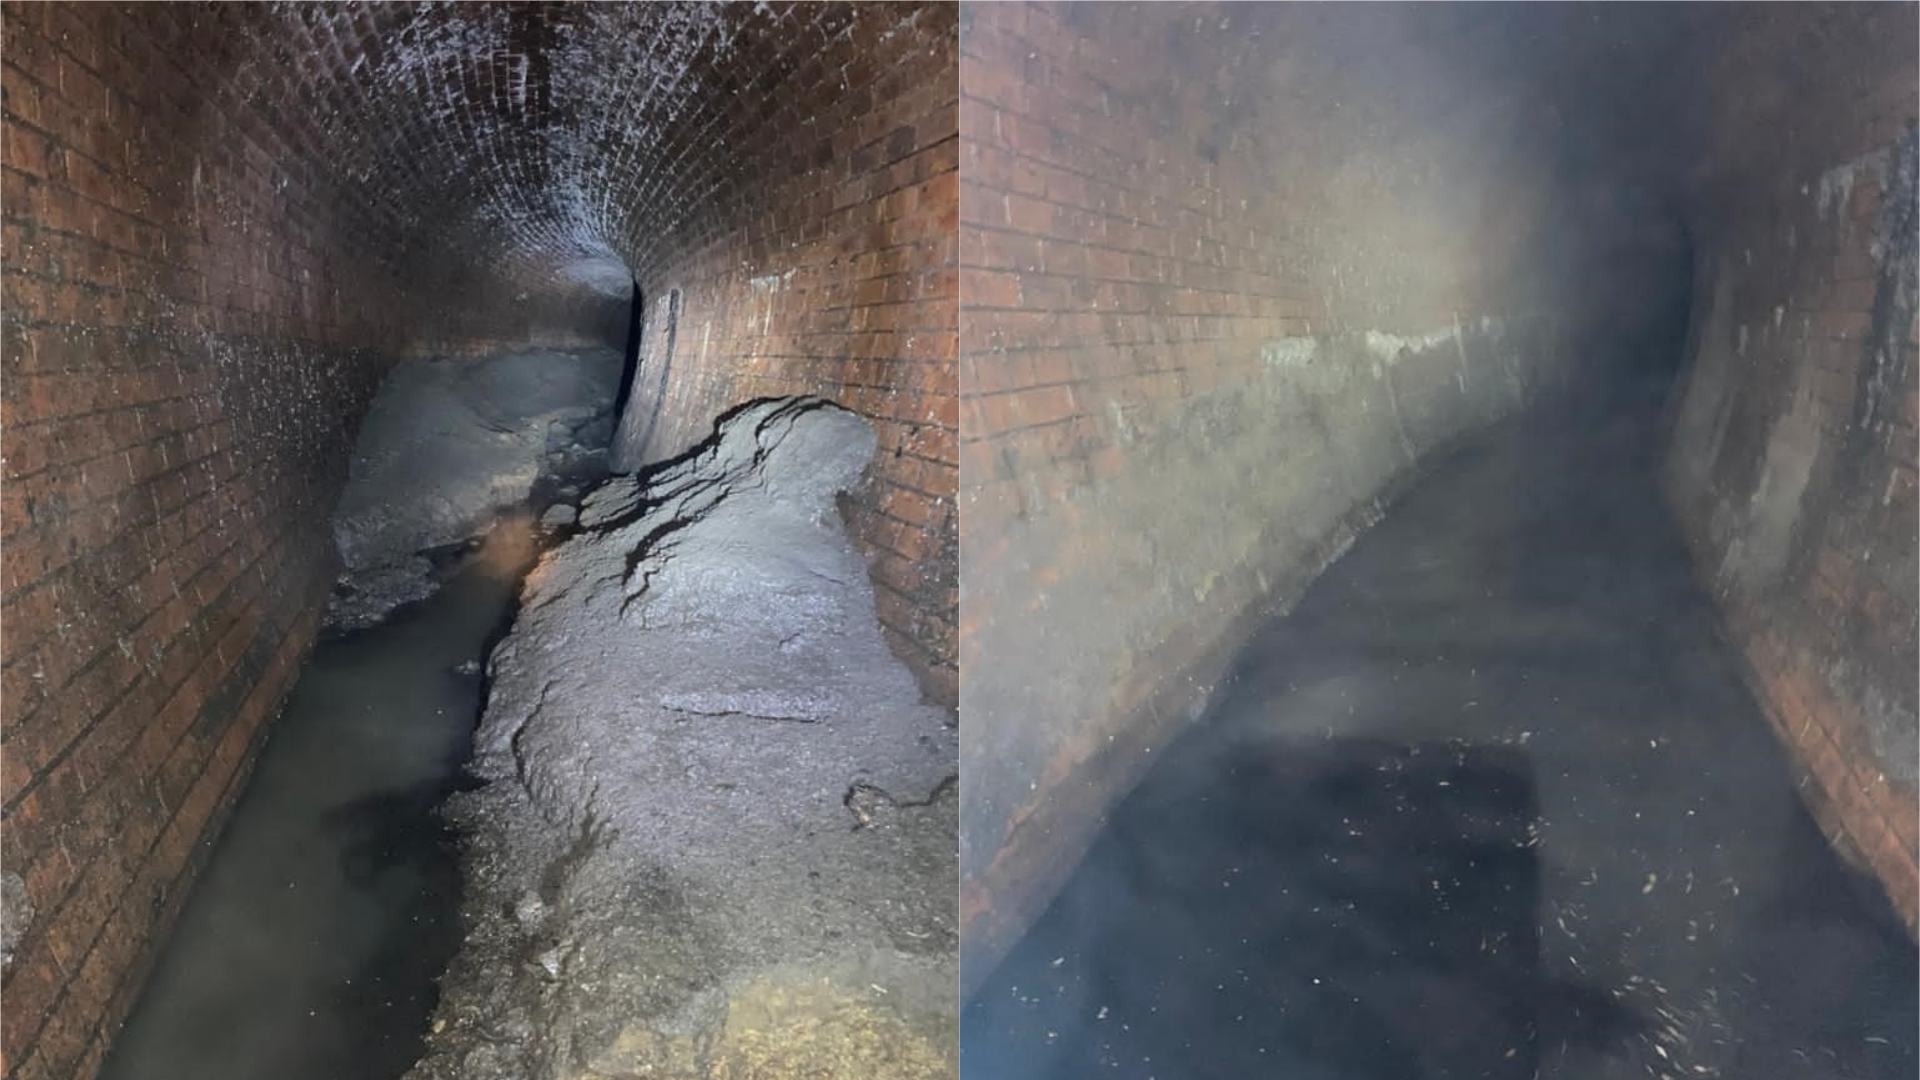 Disgusting fatberg the size of a house removed from sewer 1